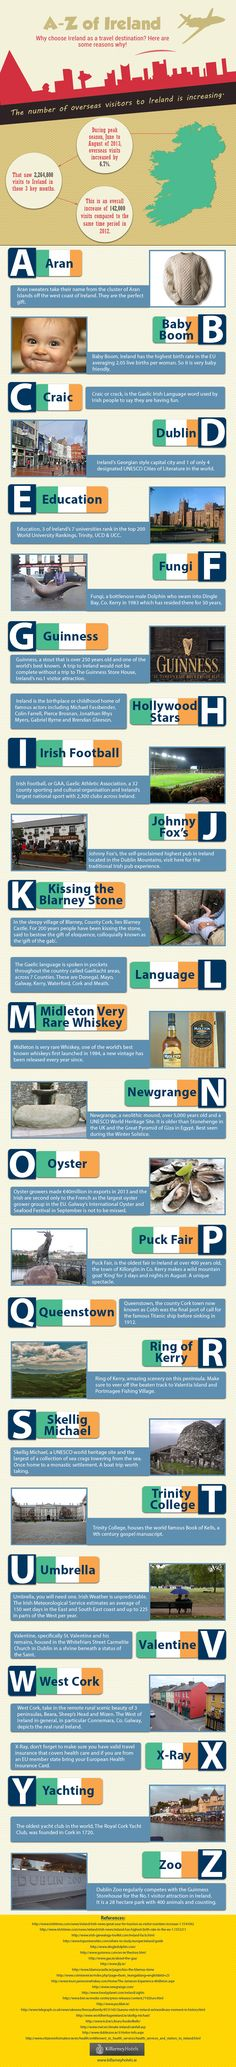 A to Z of Ireland Infographic